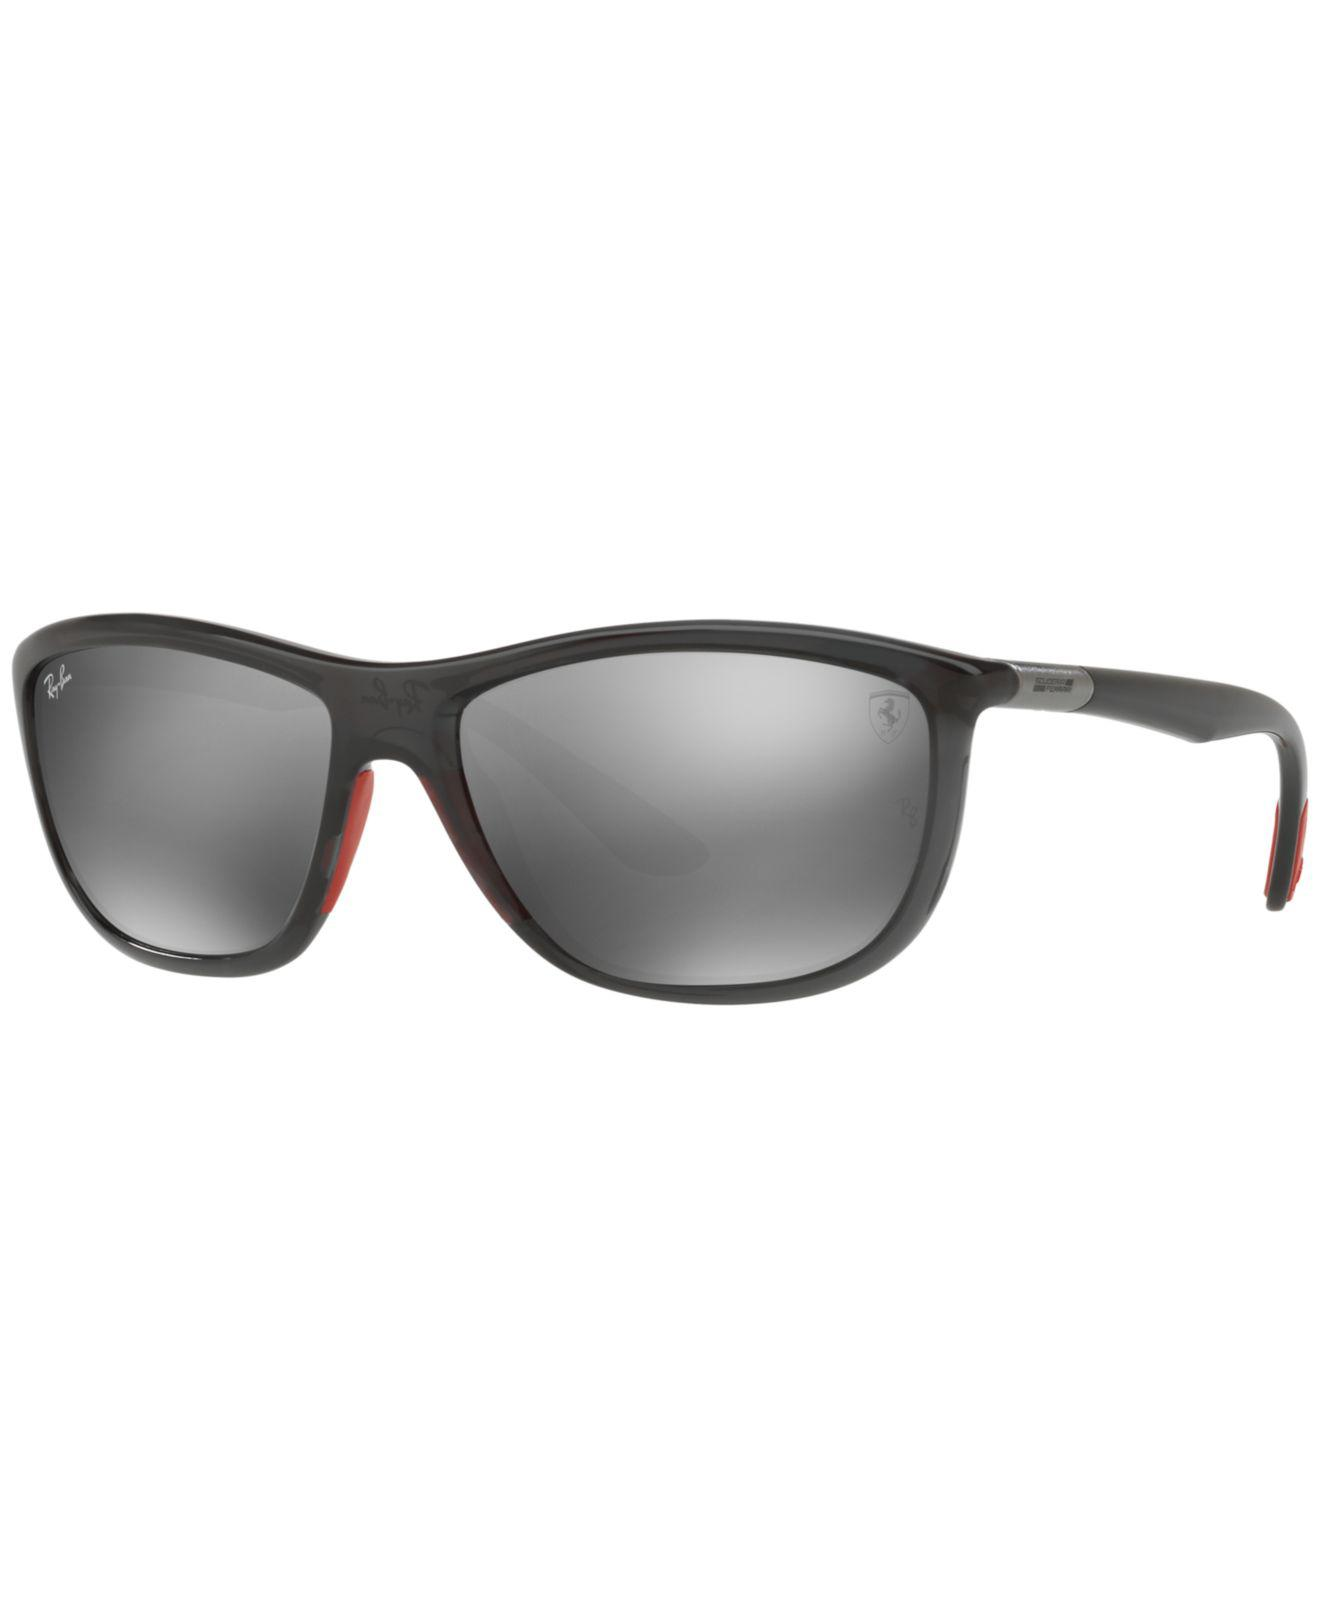 1bdbf3d1cf Ray-Ban. Men s Gray Sunglasses